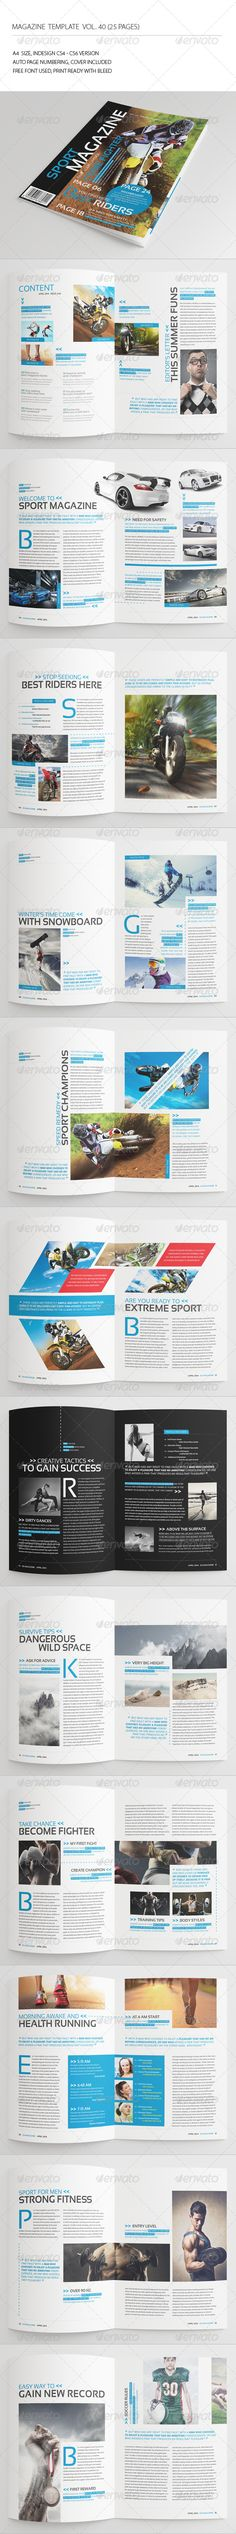 25 Pages Sport Magazine Vol40 by -BeCreative- 25 Pages Sport Magazine Vol40: This item consist of 25 pages that fully editable and customizable.Detail :25 pages Size A4 (8.27x1